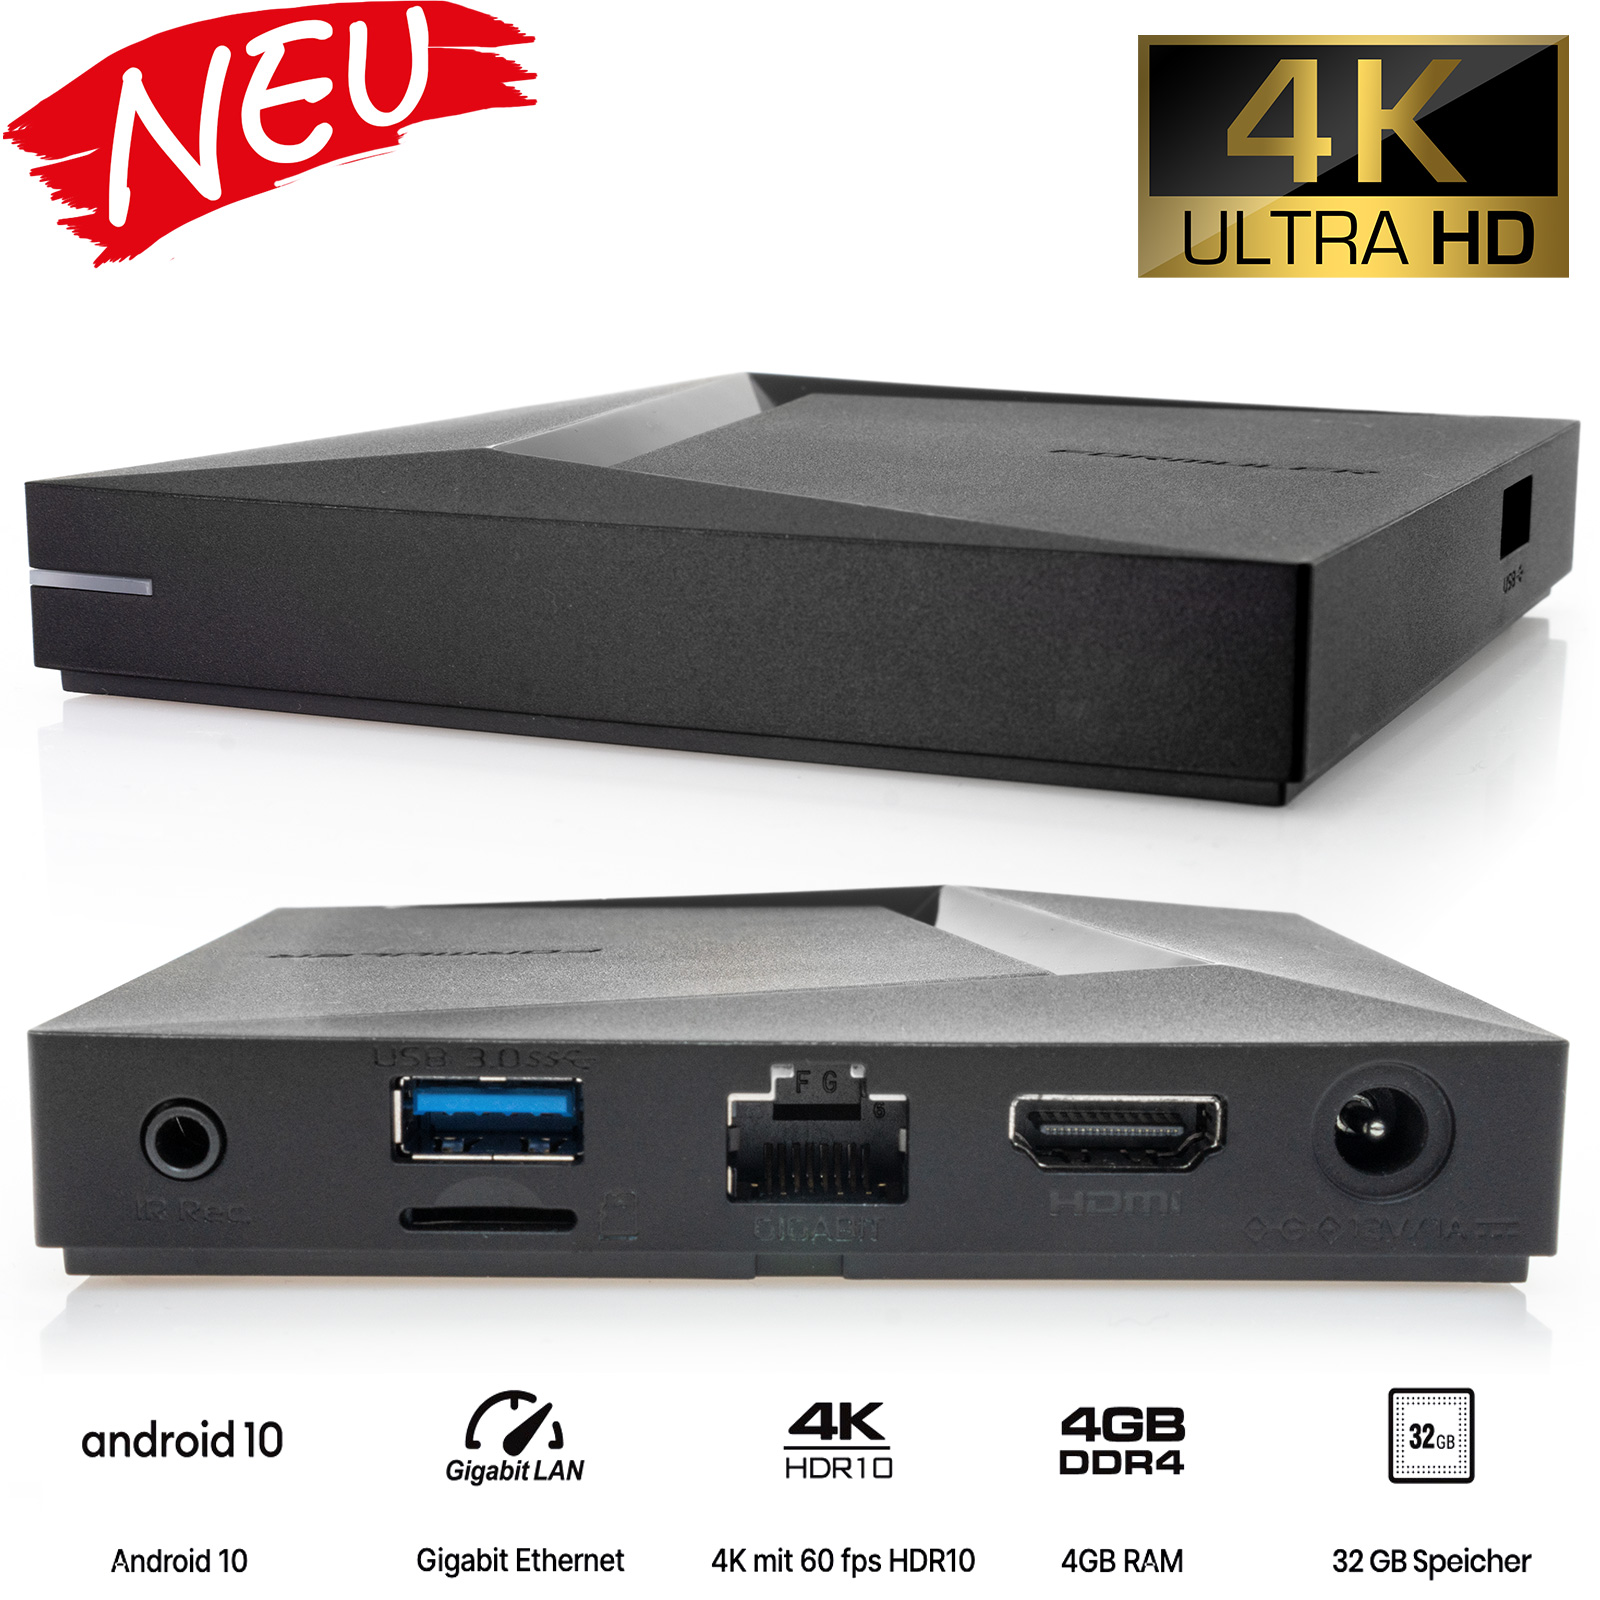 Formuler Z10 Pro Max 4K UHD Android IP-Receiver (HDR10, Bluetooth, WiFi, HDMI, USB 3.0, MicroSD)